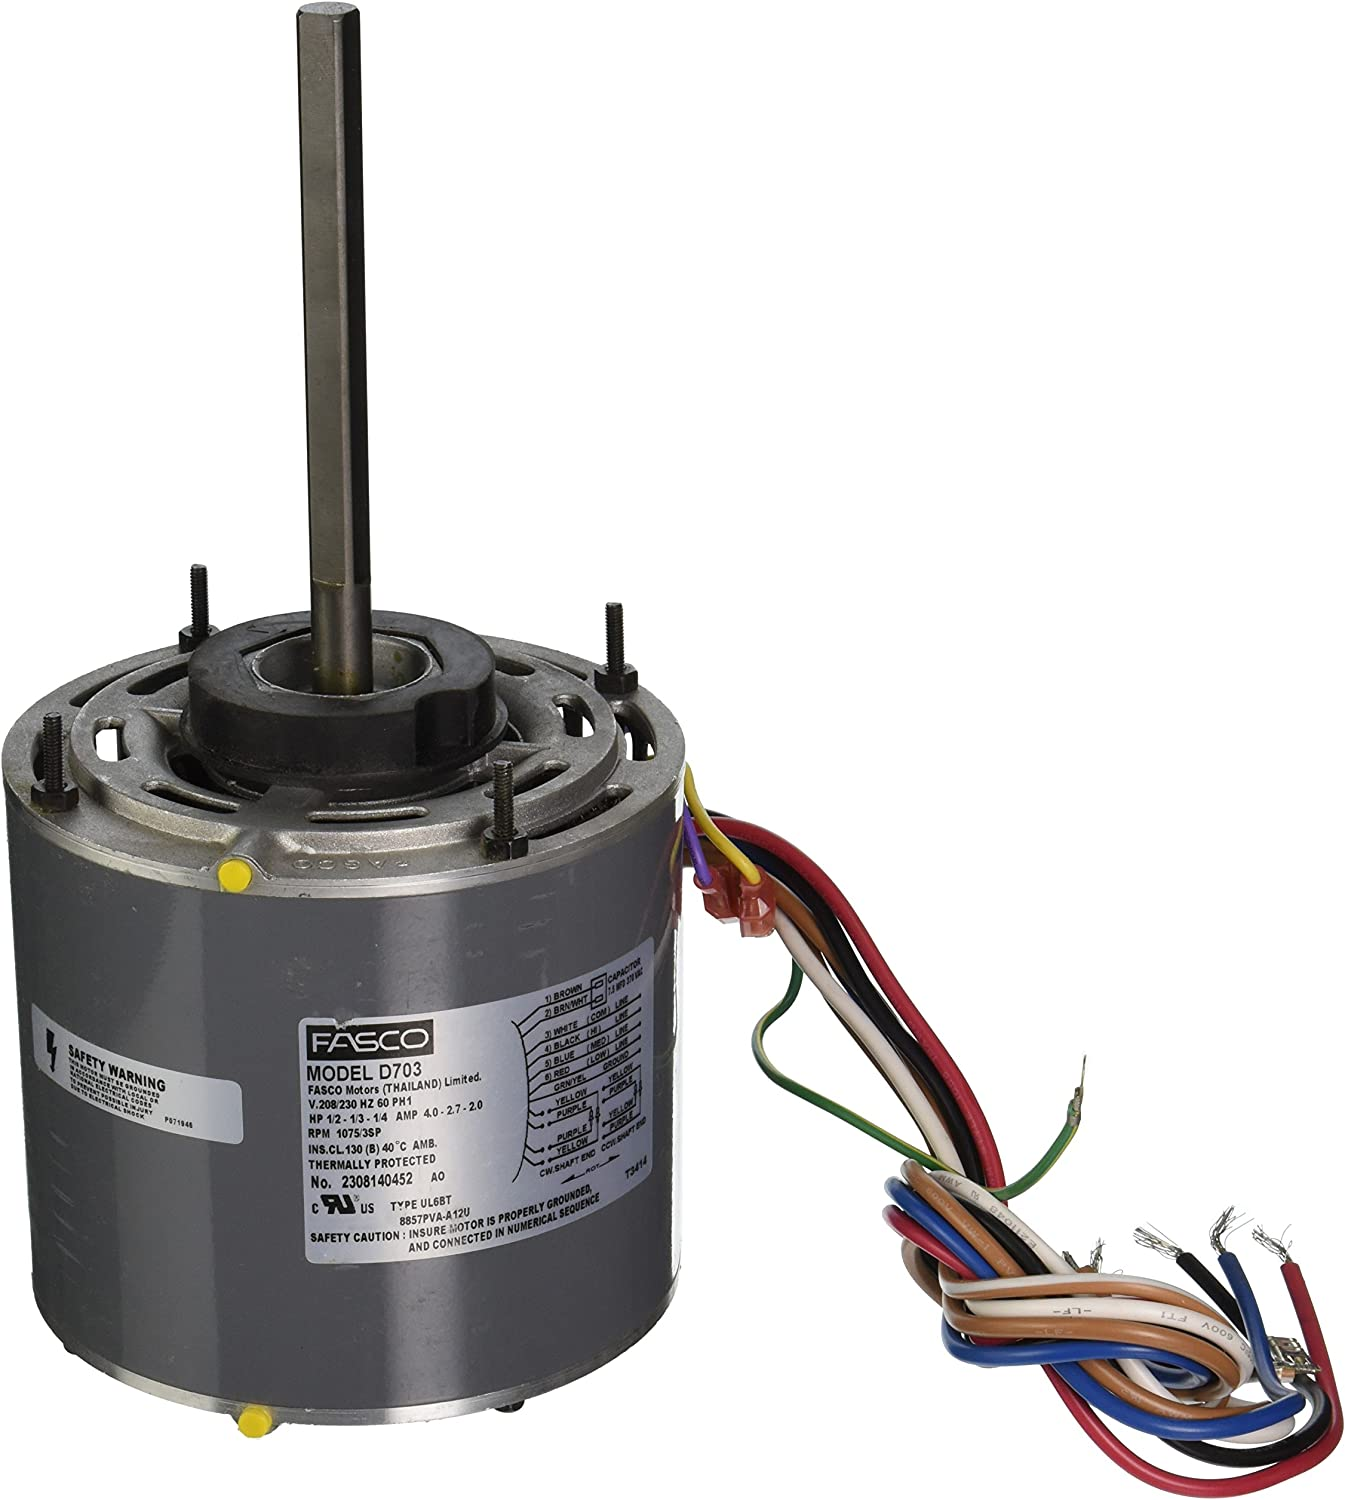 """Fasco D703 5.6"""" Frame Open Ventilated Permanent Split Capacitor Direct Drive Blower Motor with Sleeve Bearing, 1/2-1/3-1/4HP, 1075rpm, 208-230V, 60Hz, 4-2.7-2 amps"""